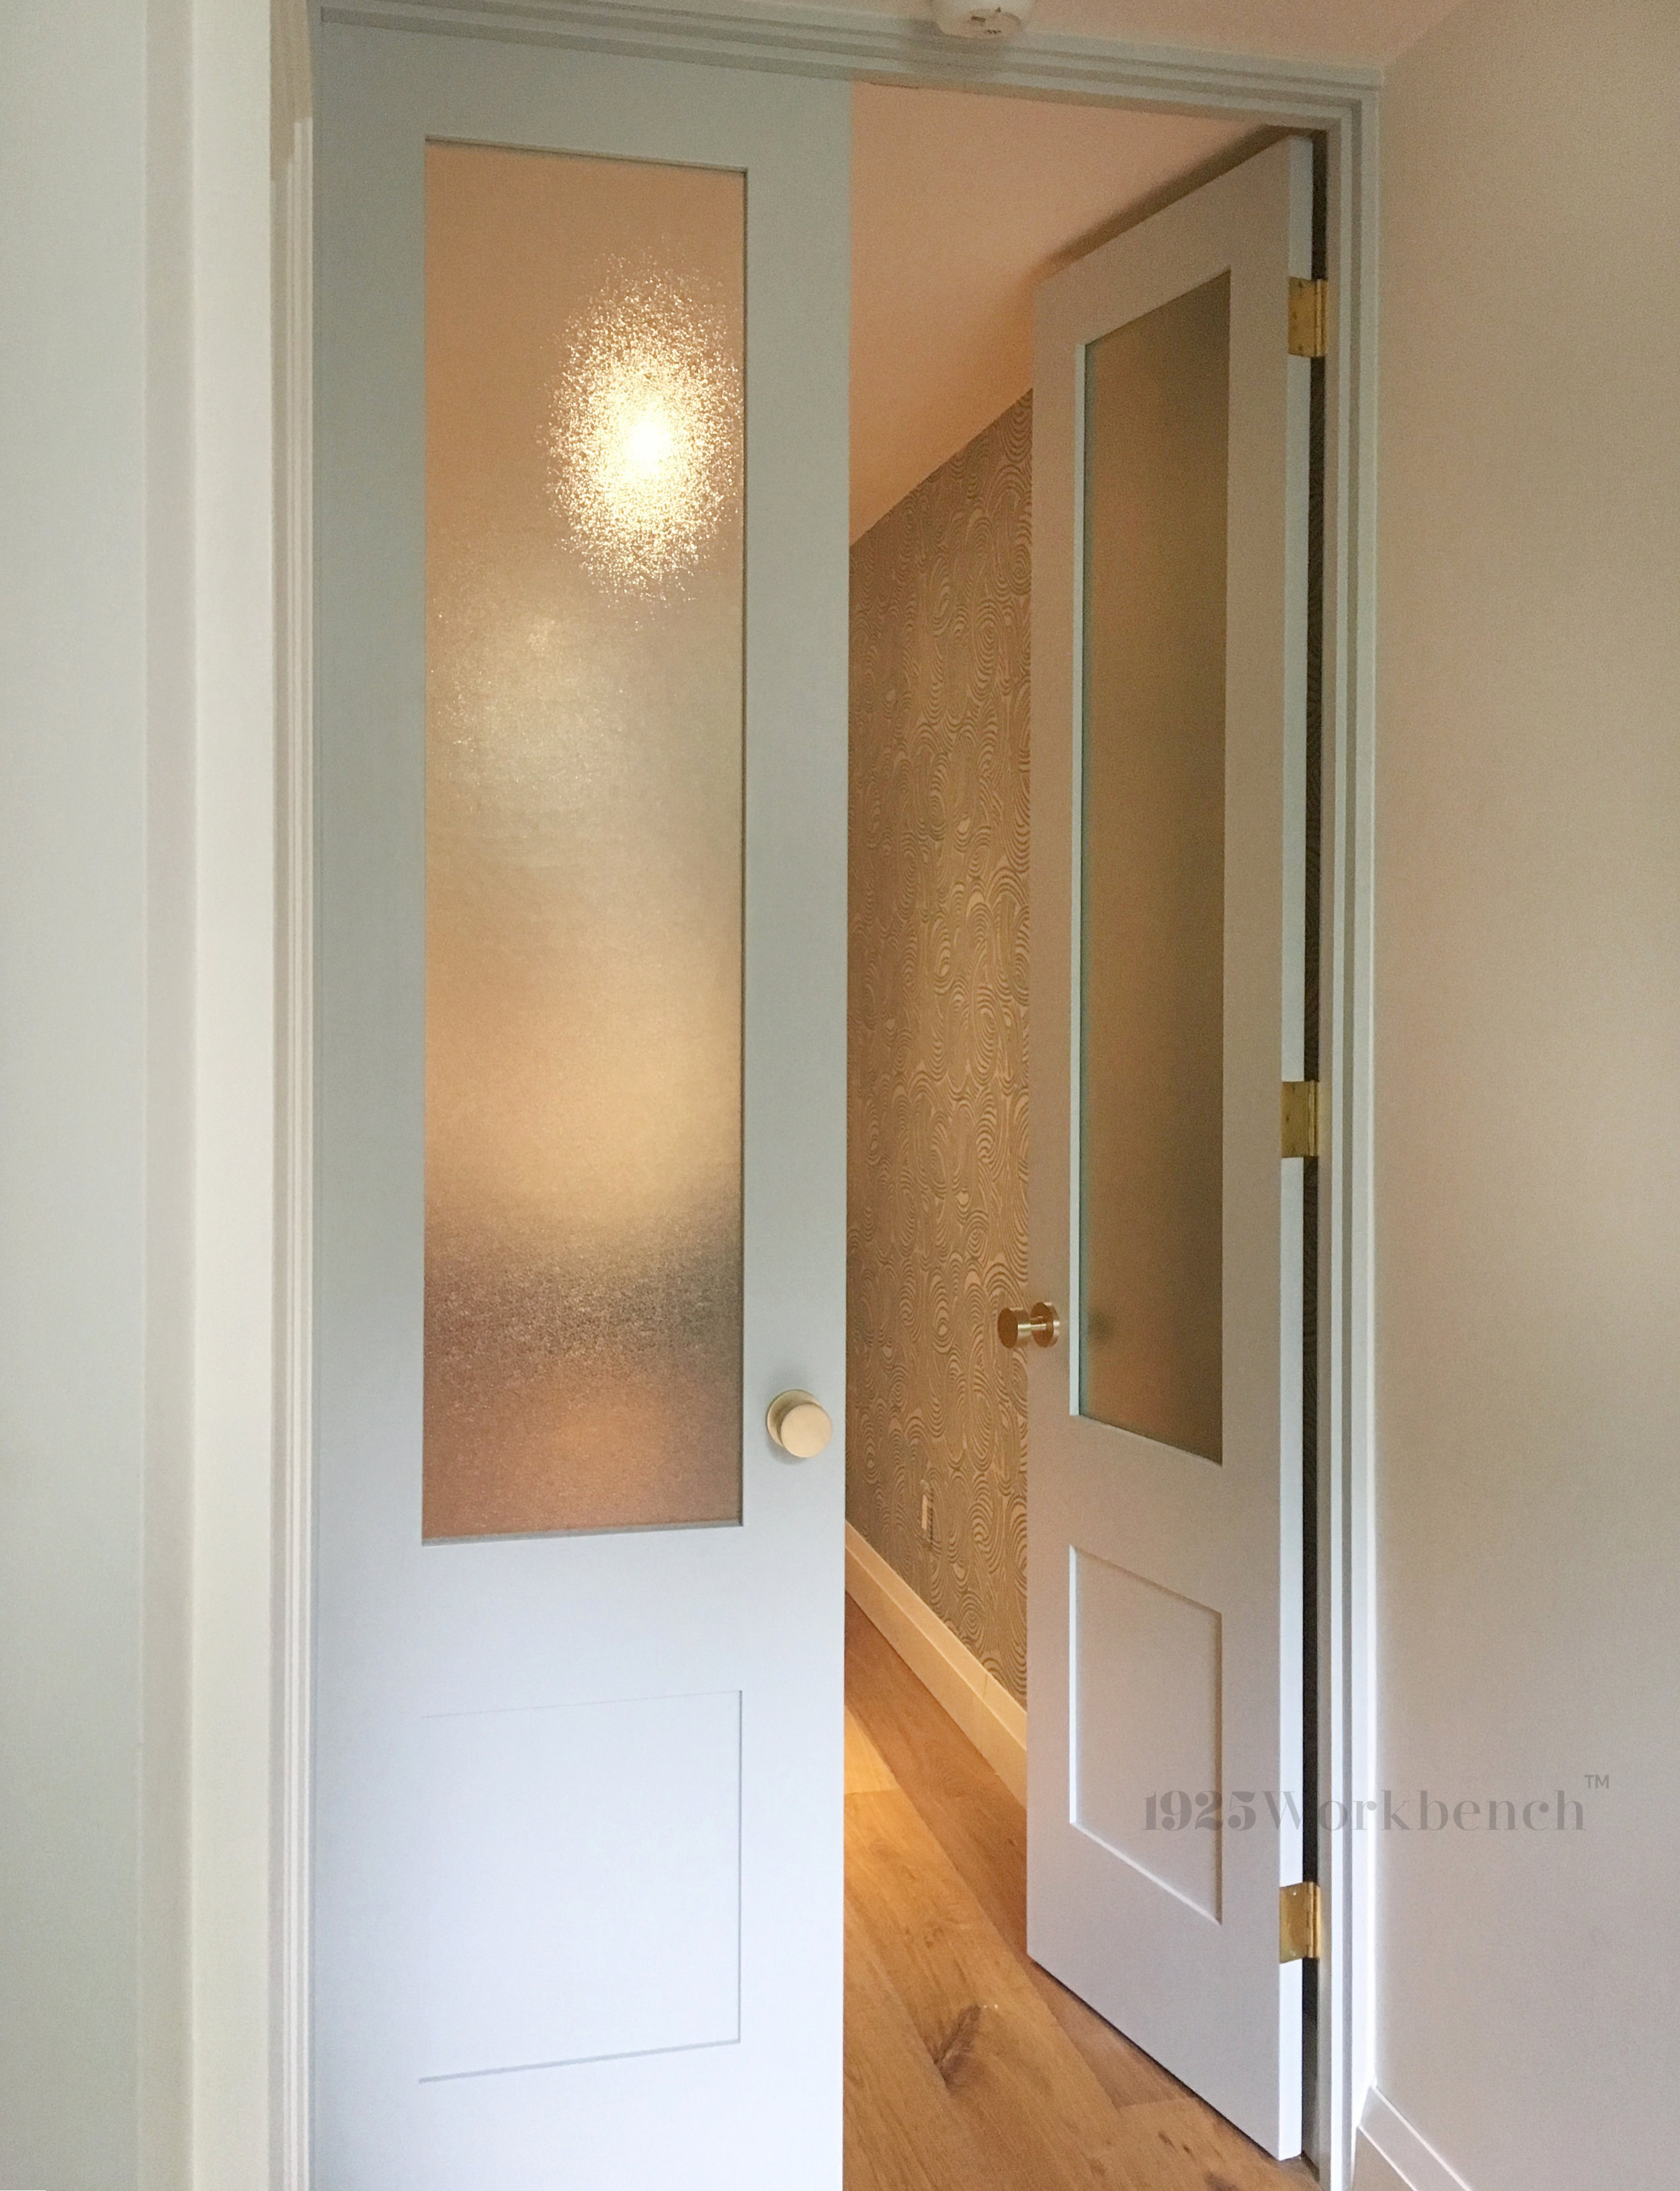 Double panel door with frosted glass